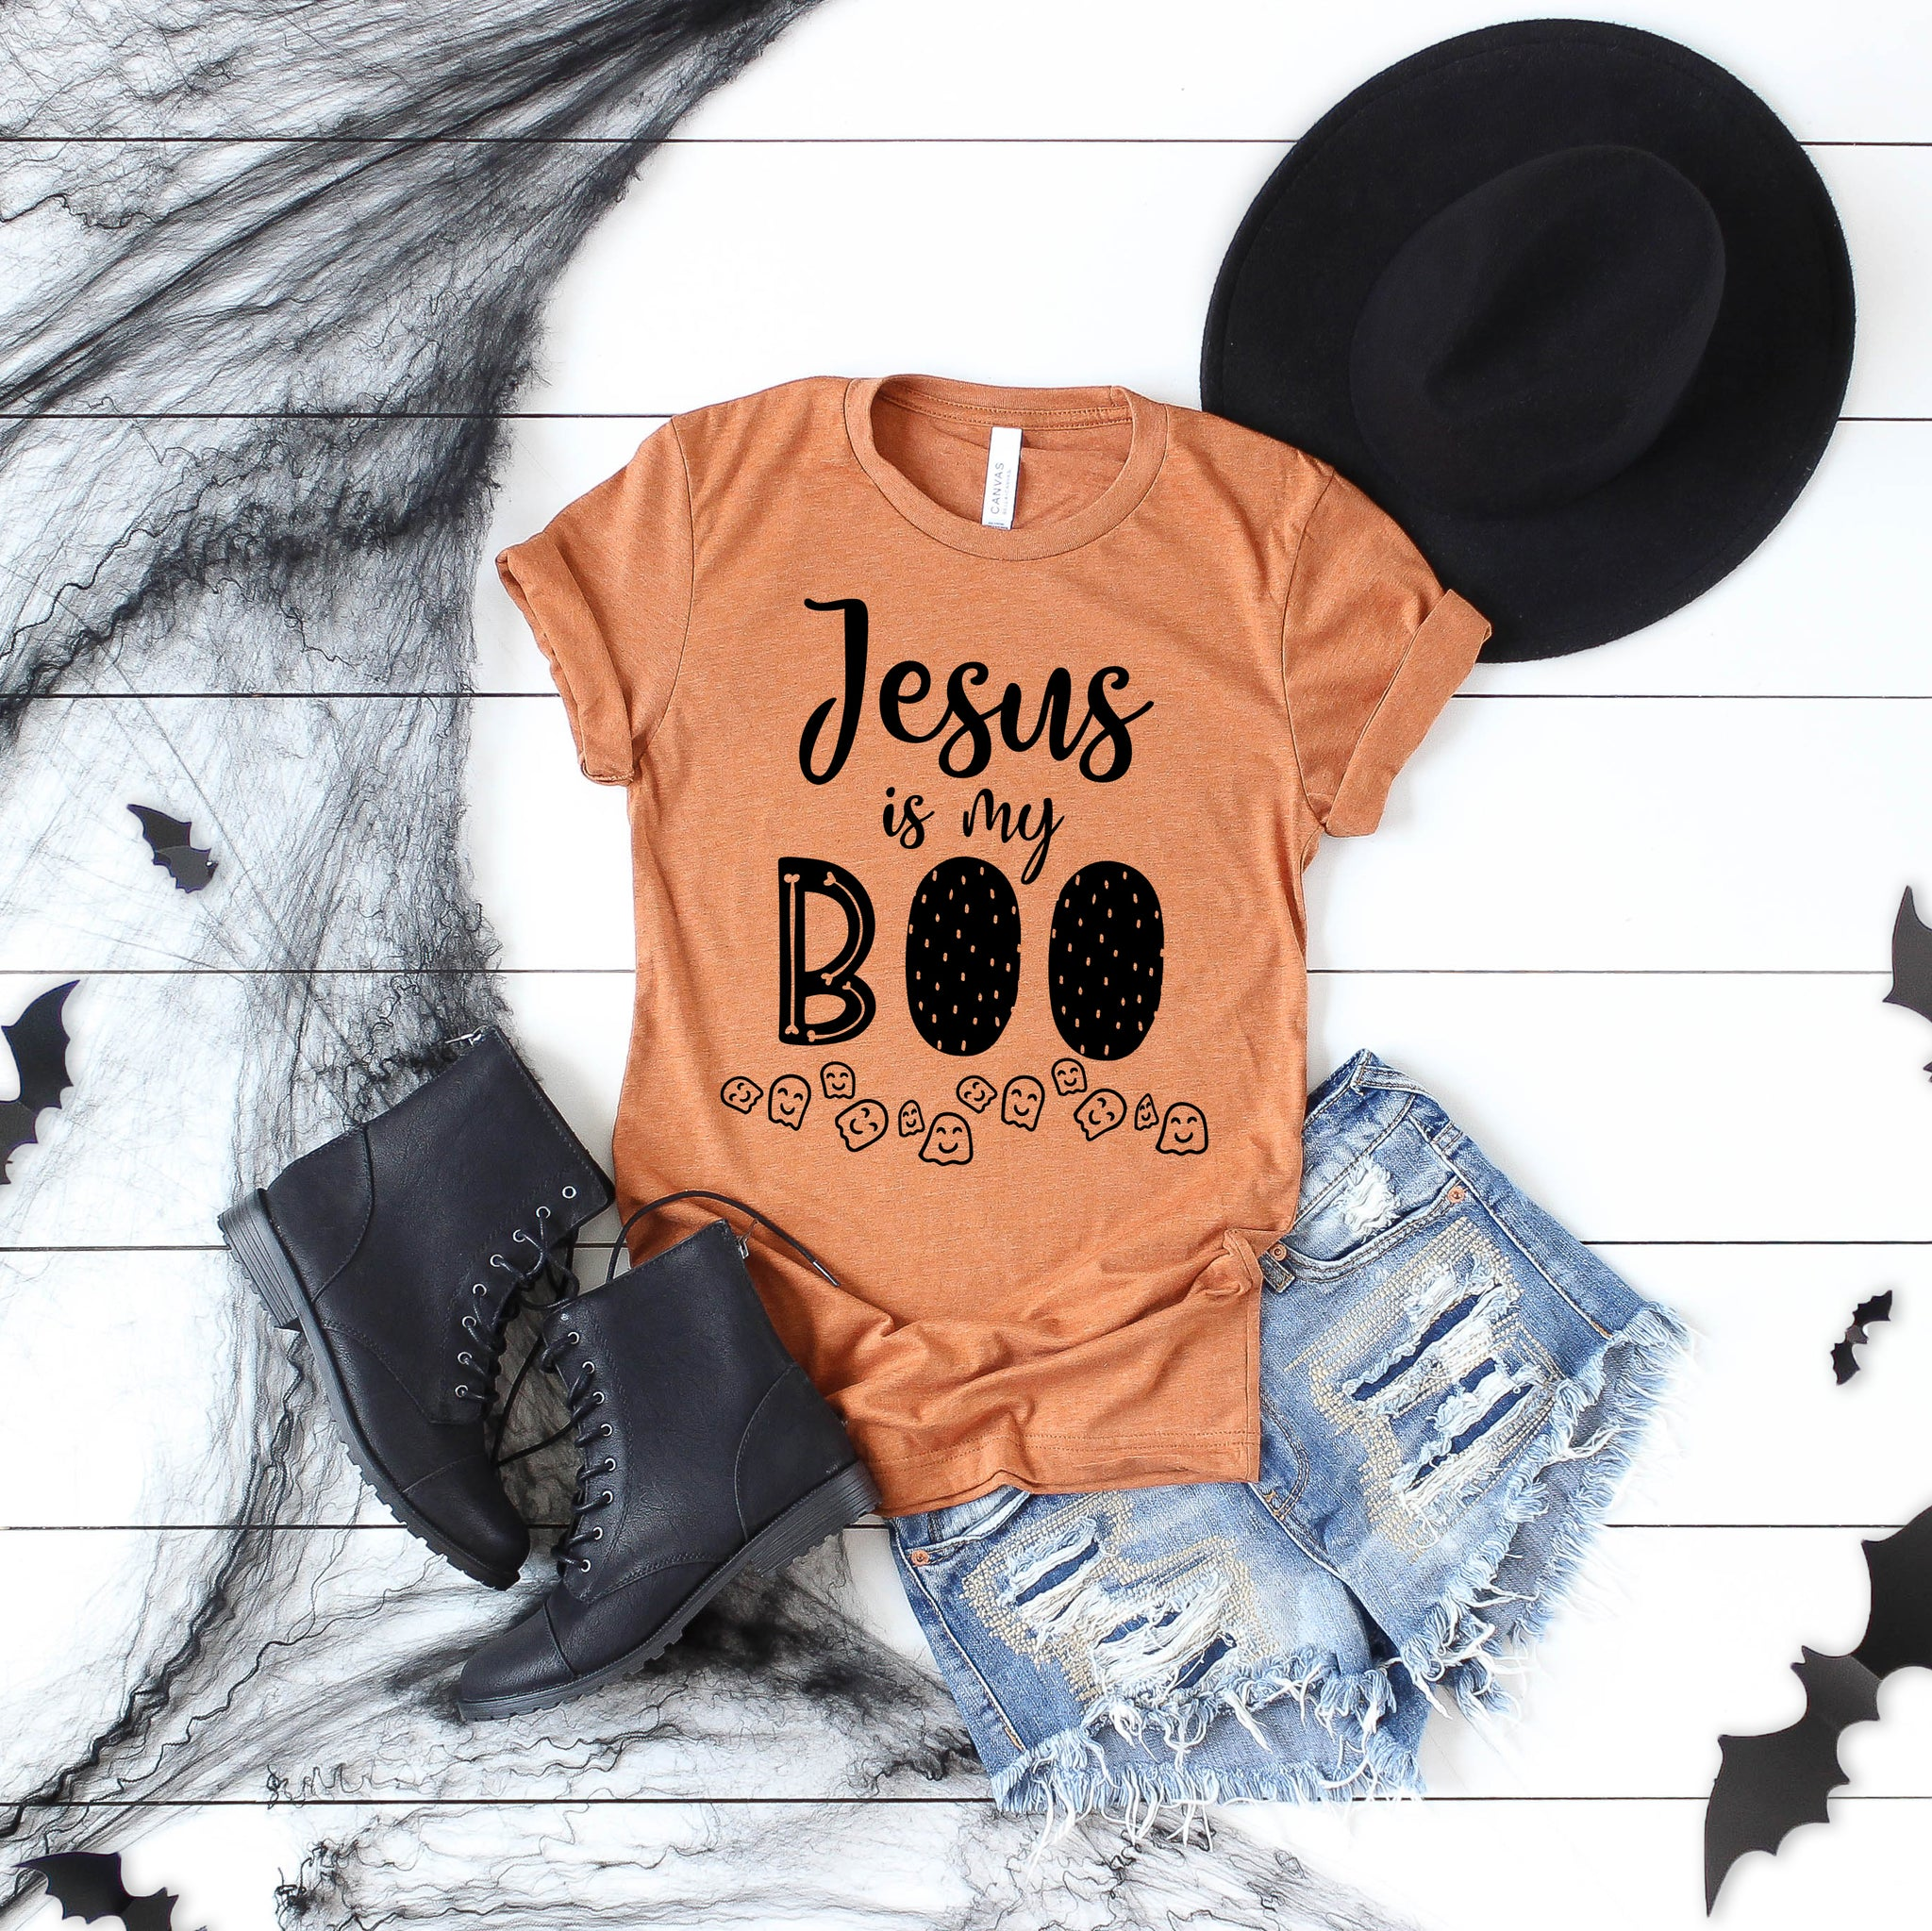 Jesus Is My Boo Halloween Short Sleeve Shirt - Bella Faith - Christian Shirts for Women - Women's Faith Based Apparel - Christian Clothing for Women - Christian Jewelry and Gifts for Women - Trendy Christian Tees